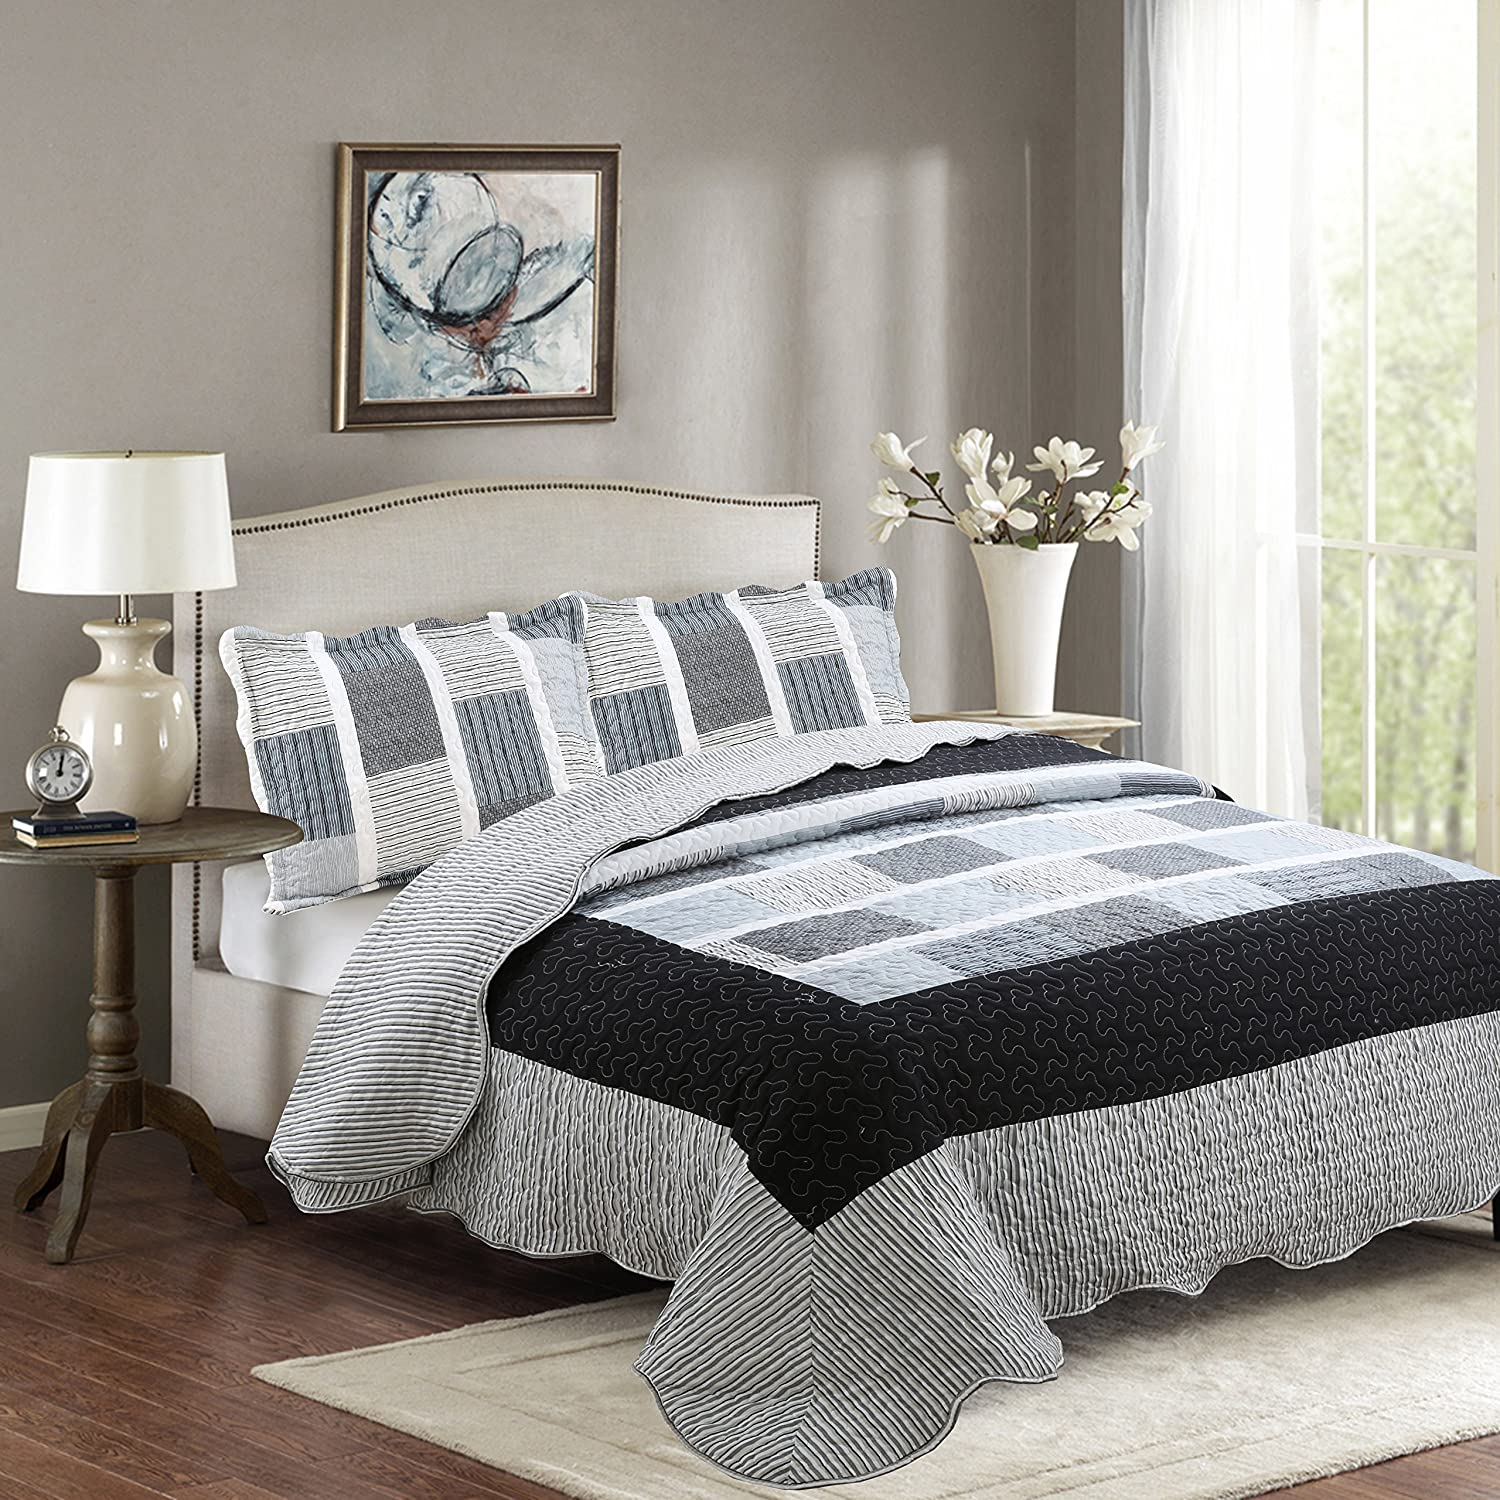 MK Home Mk Collection 2pc Twin/Twin Extra Long Reversible Bedspread Coverlet Set Stripped Square Pattern Grey Black White New